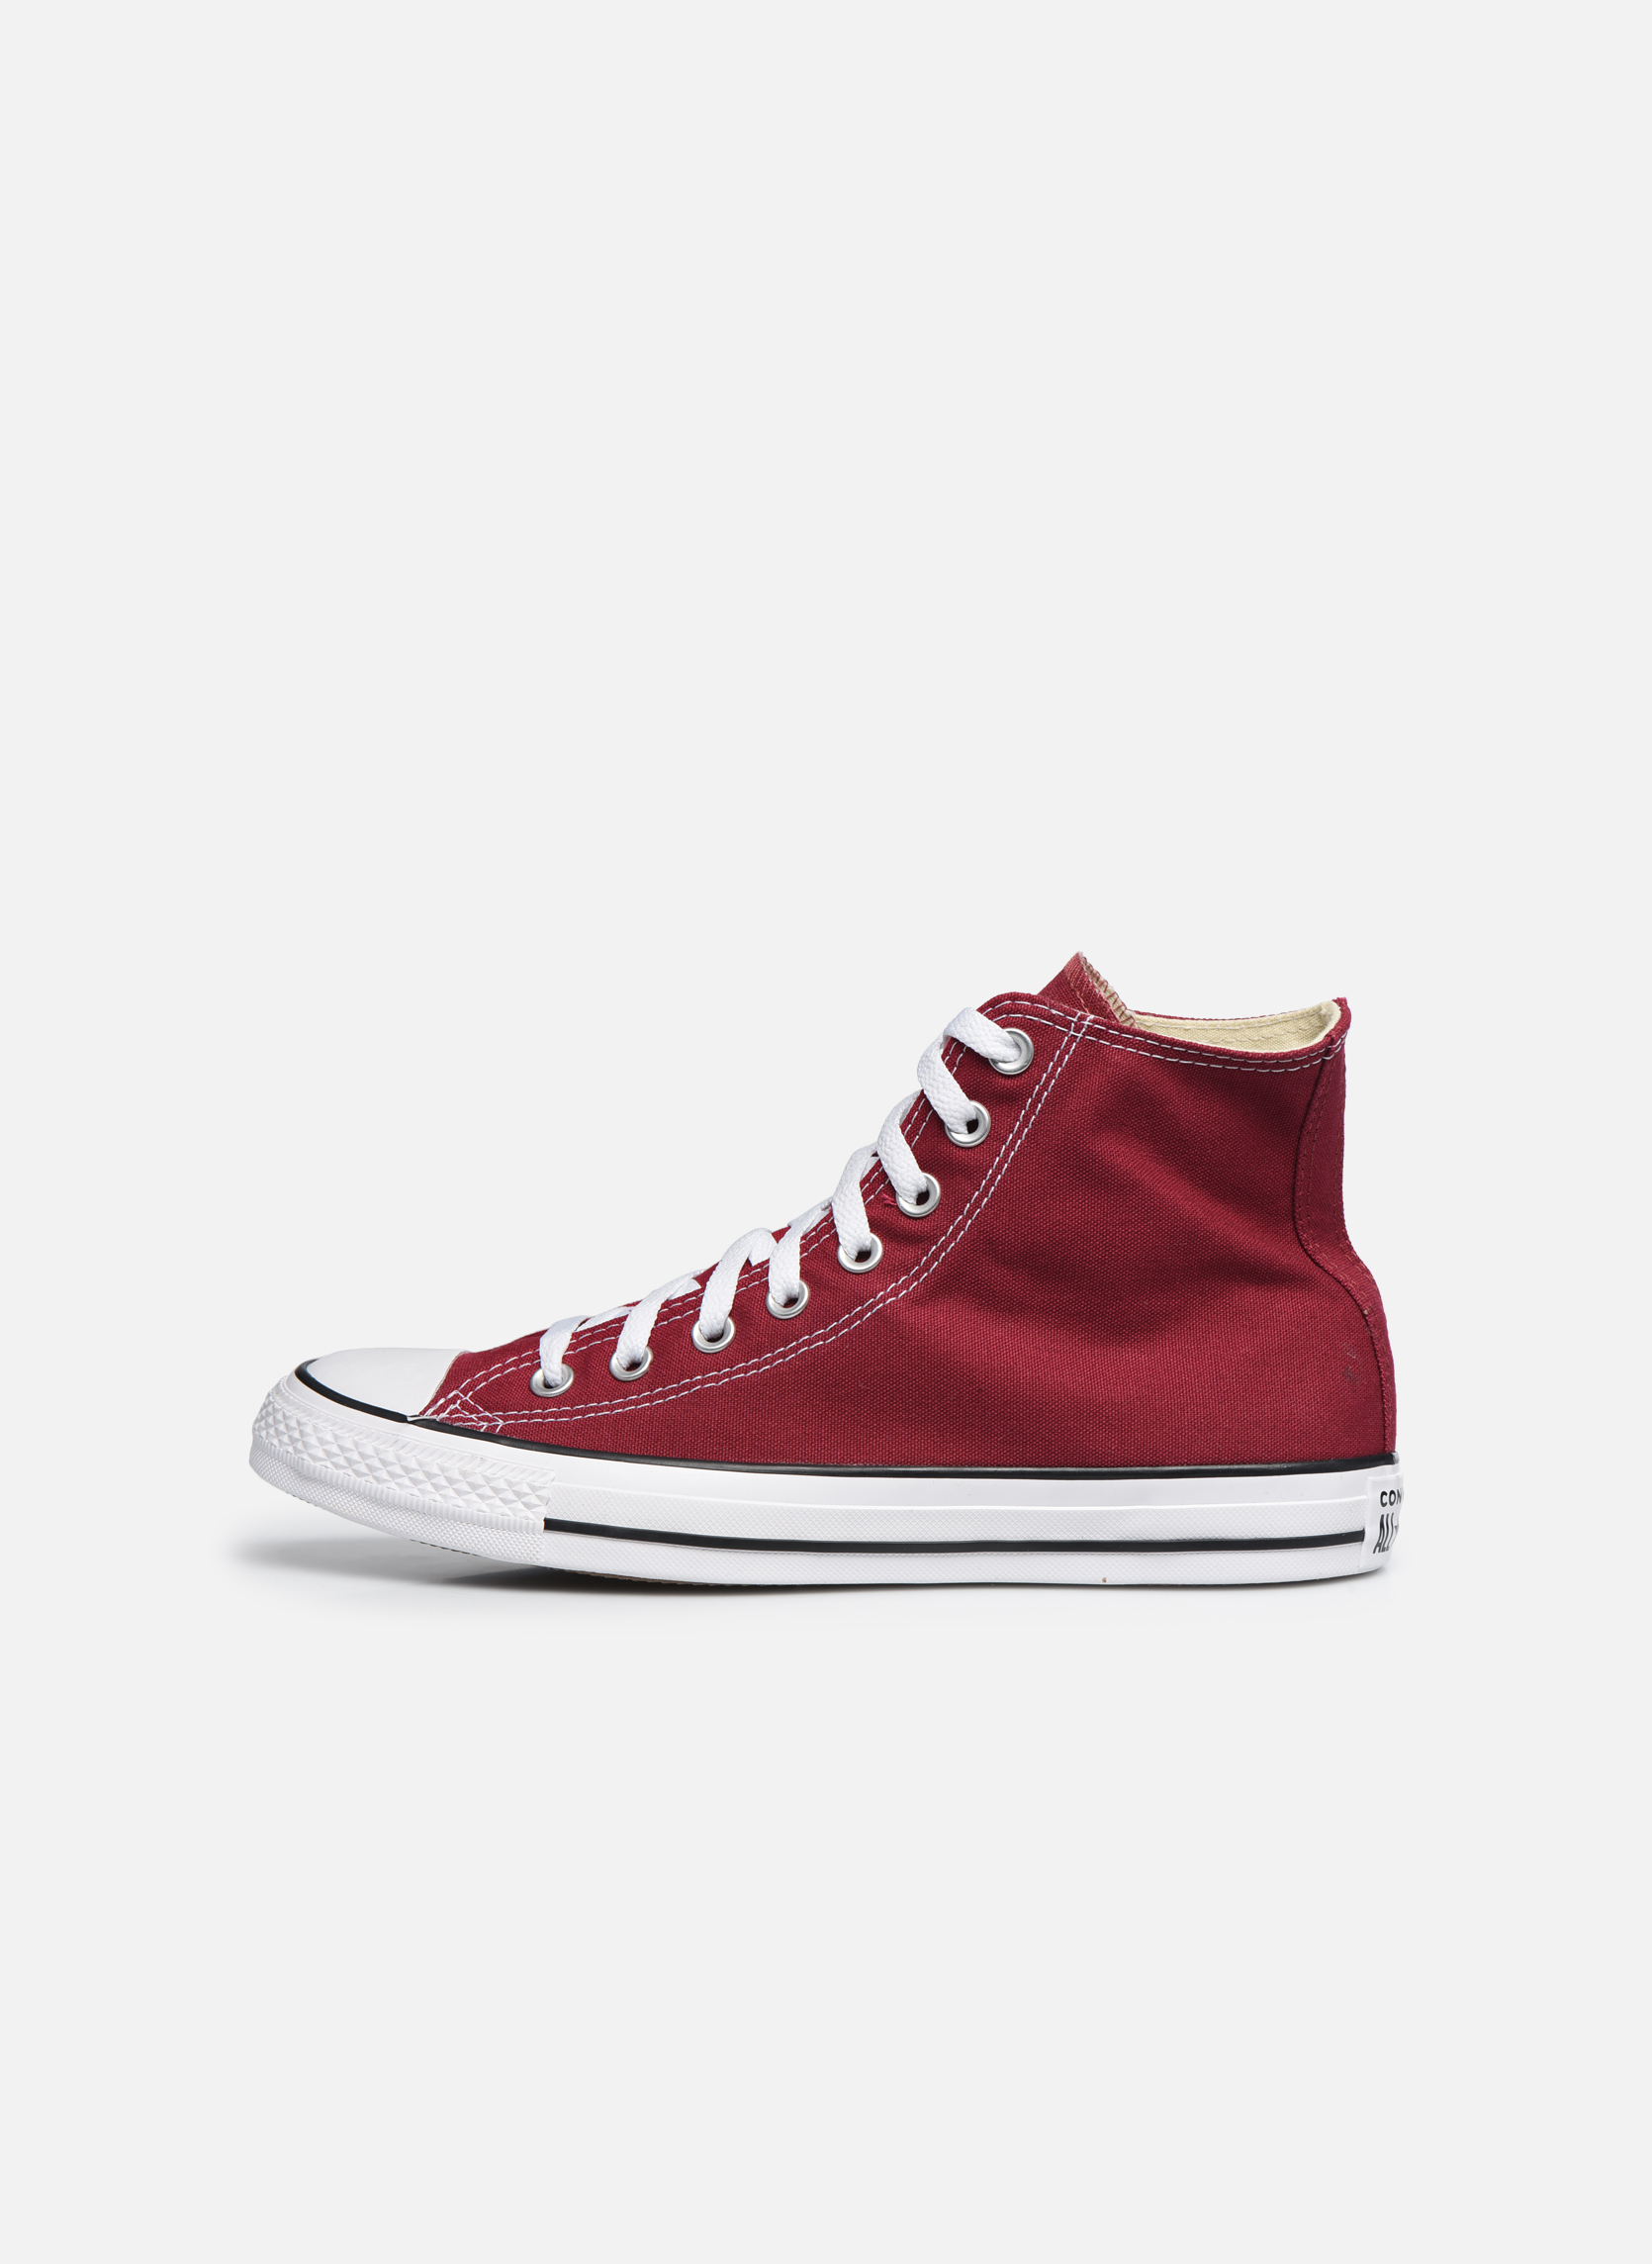 Converse Chuck Taylor All Star Hi M 96 Parere